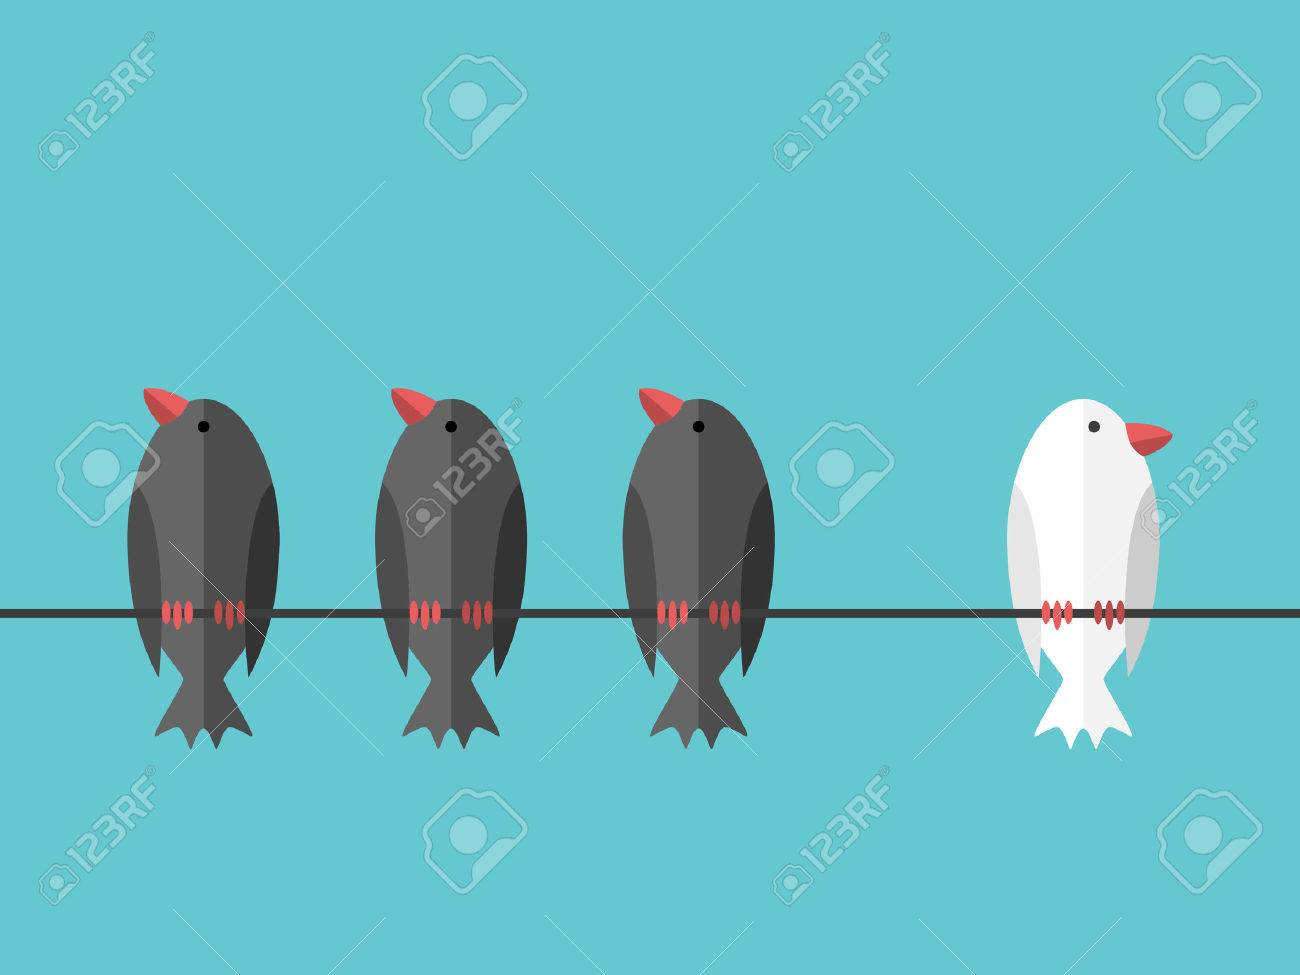 Single white unique bird perching on wire aside of many black ones on blue sky background. Courage, will power and individuality concept. Flat design. EPS 8 vector illustration, no transparency - 70792073